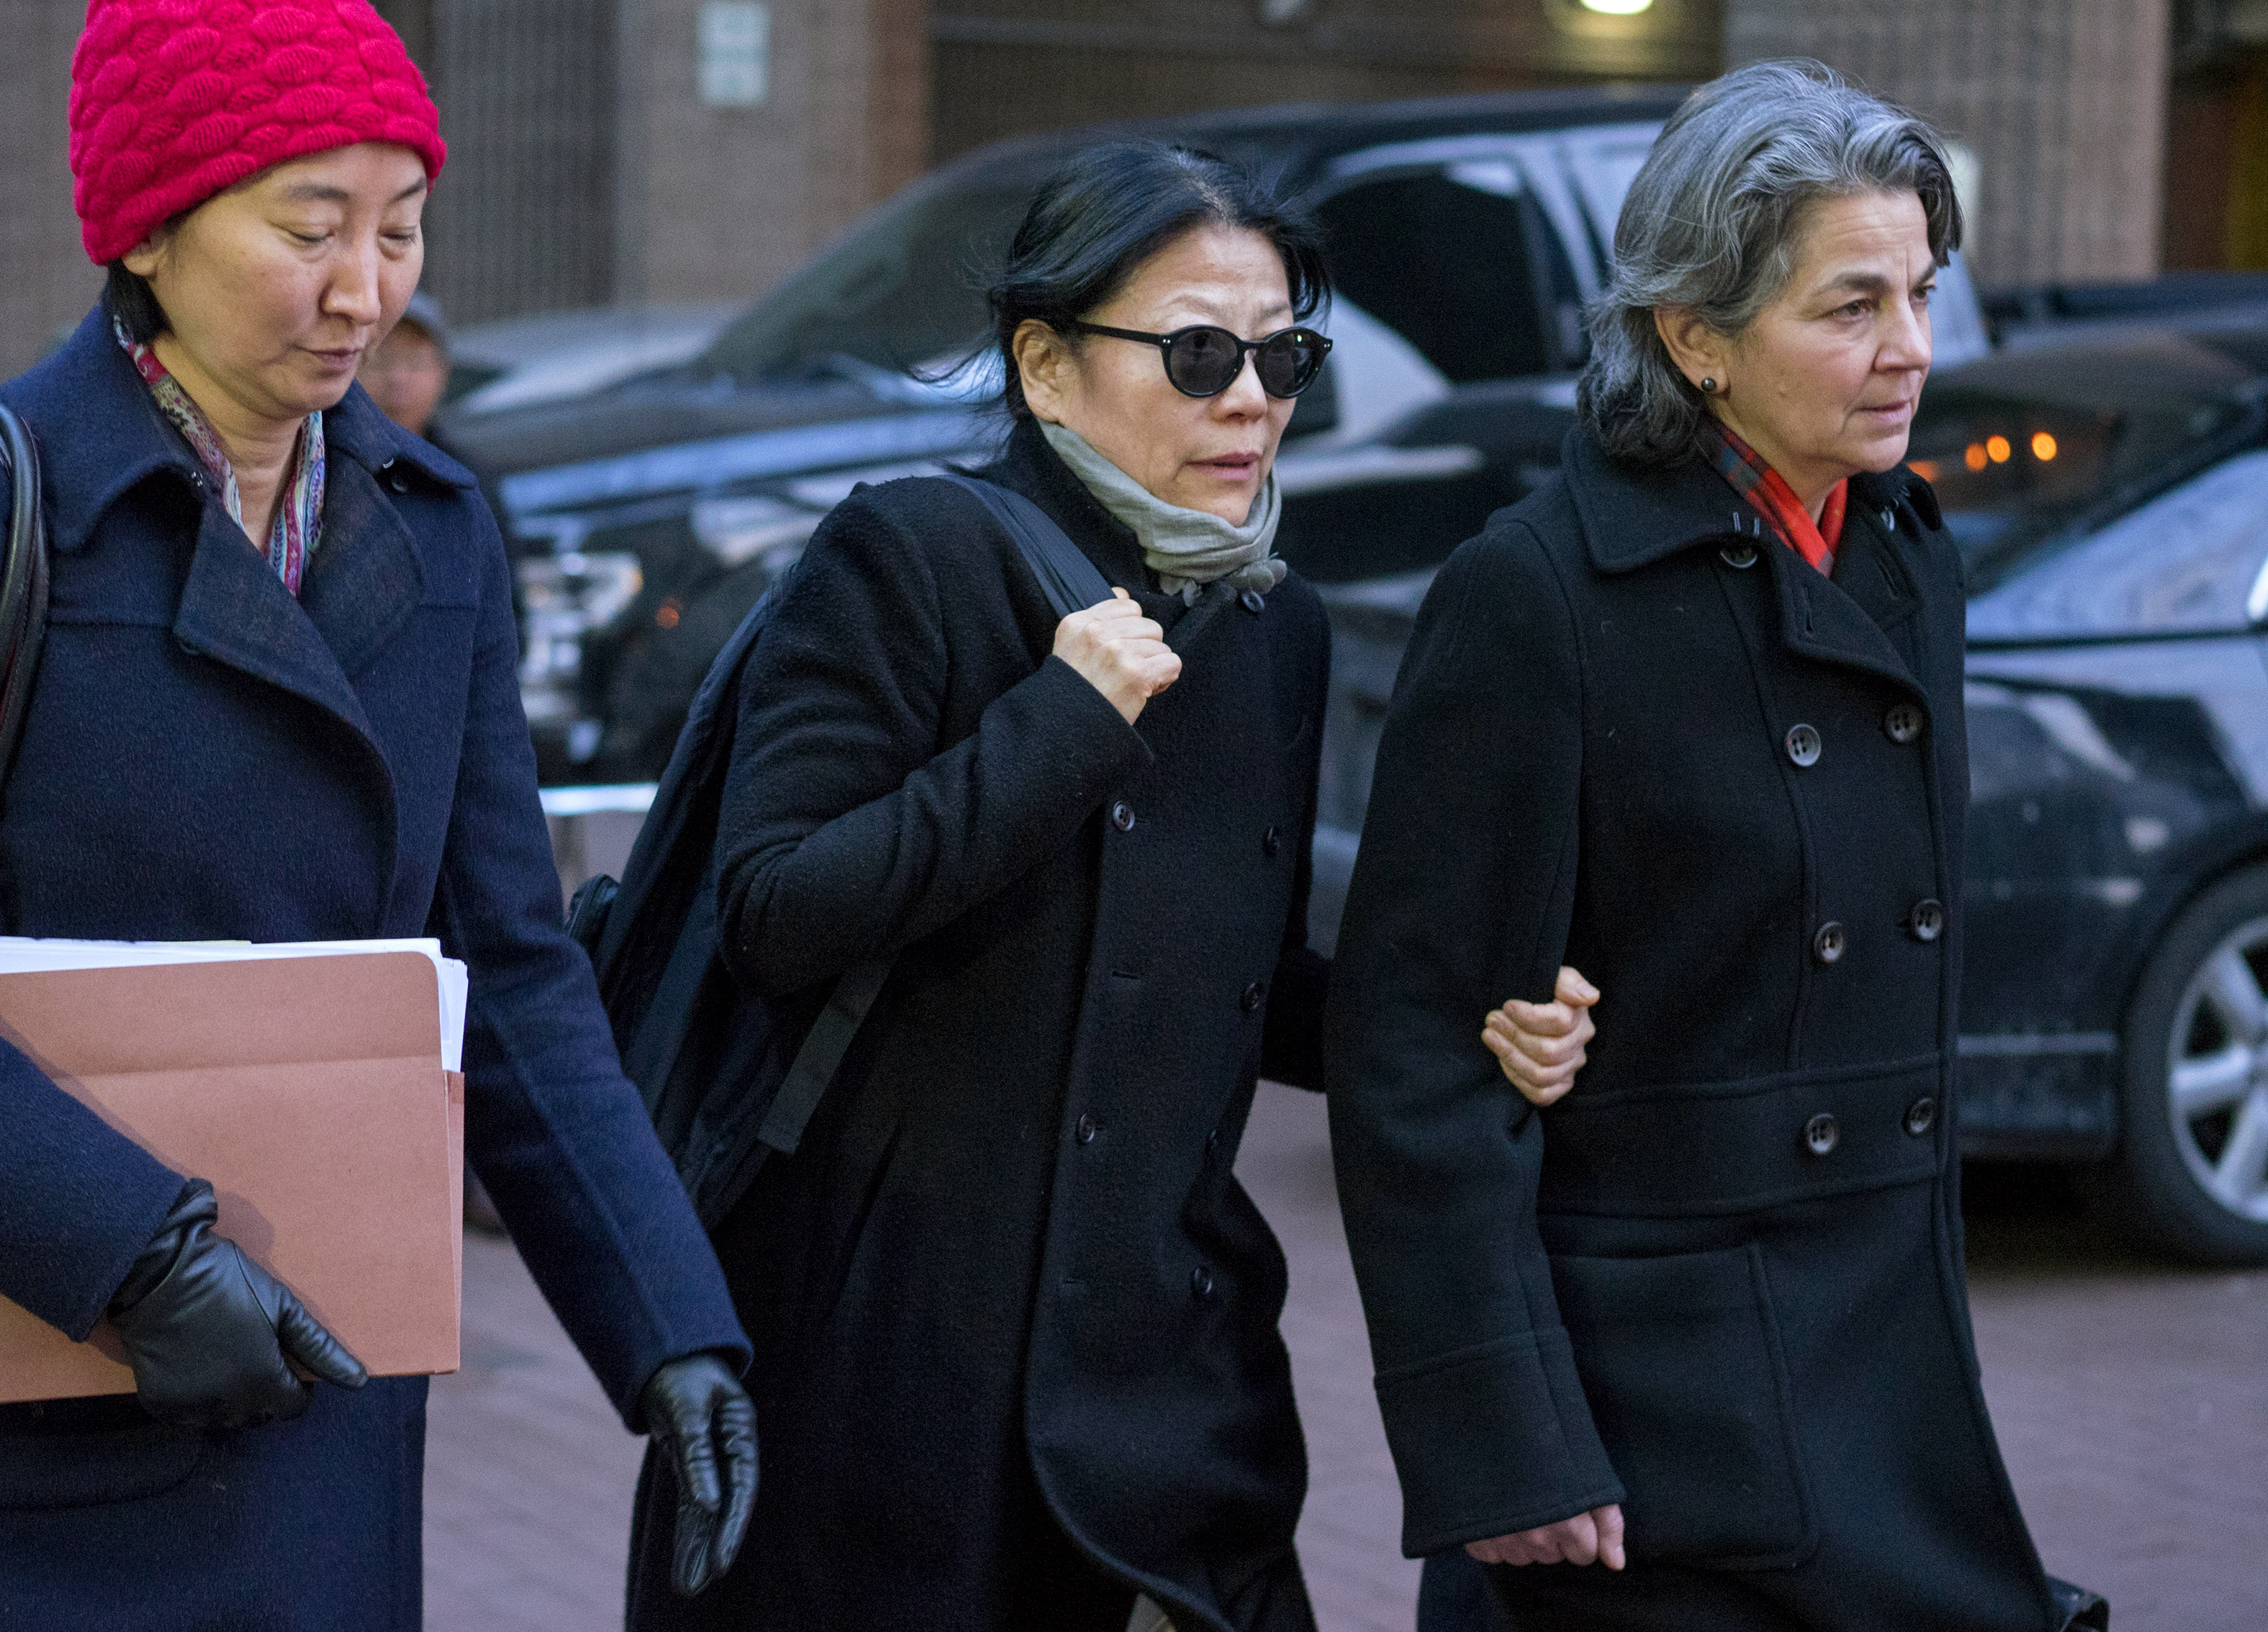 Shiwei Yan, CEO of Global Sustainability Foundation, center, leaves federal court in New York after she plead guilty in connection with a scheme to bribe ex-UN General Assembly President John Ashe on Jan. 20, 2016.